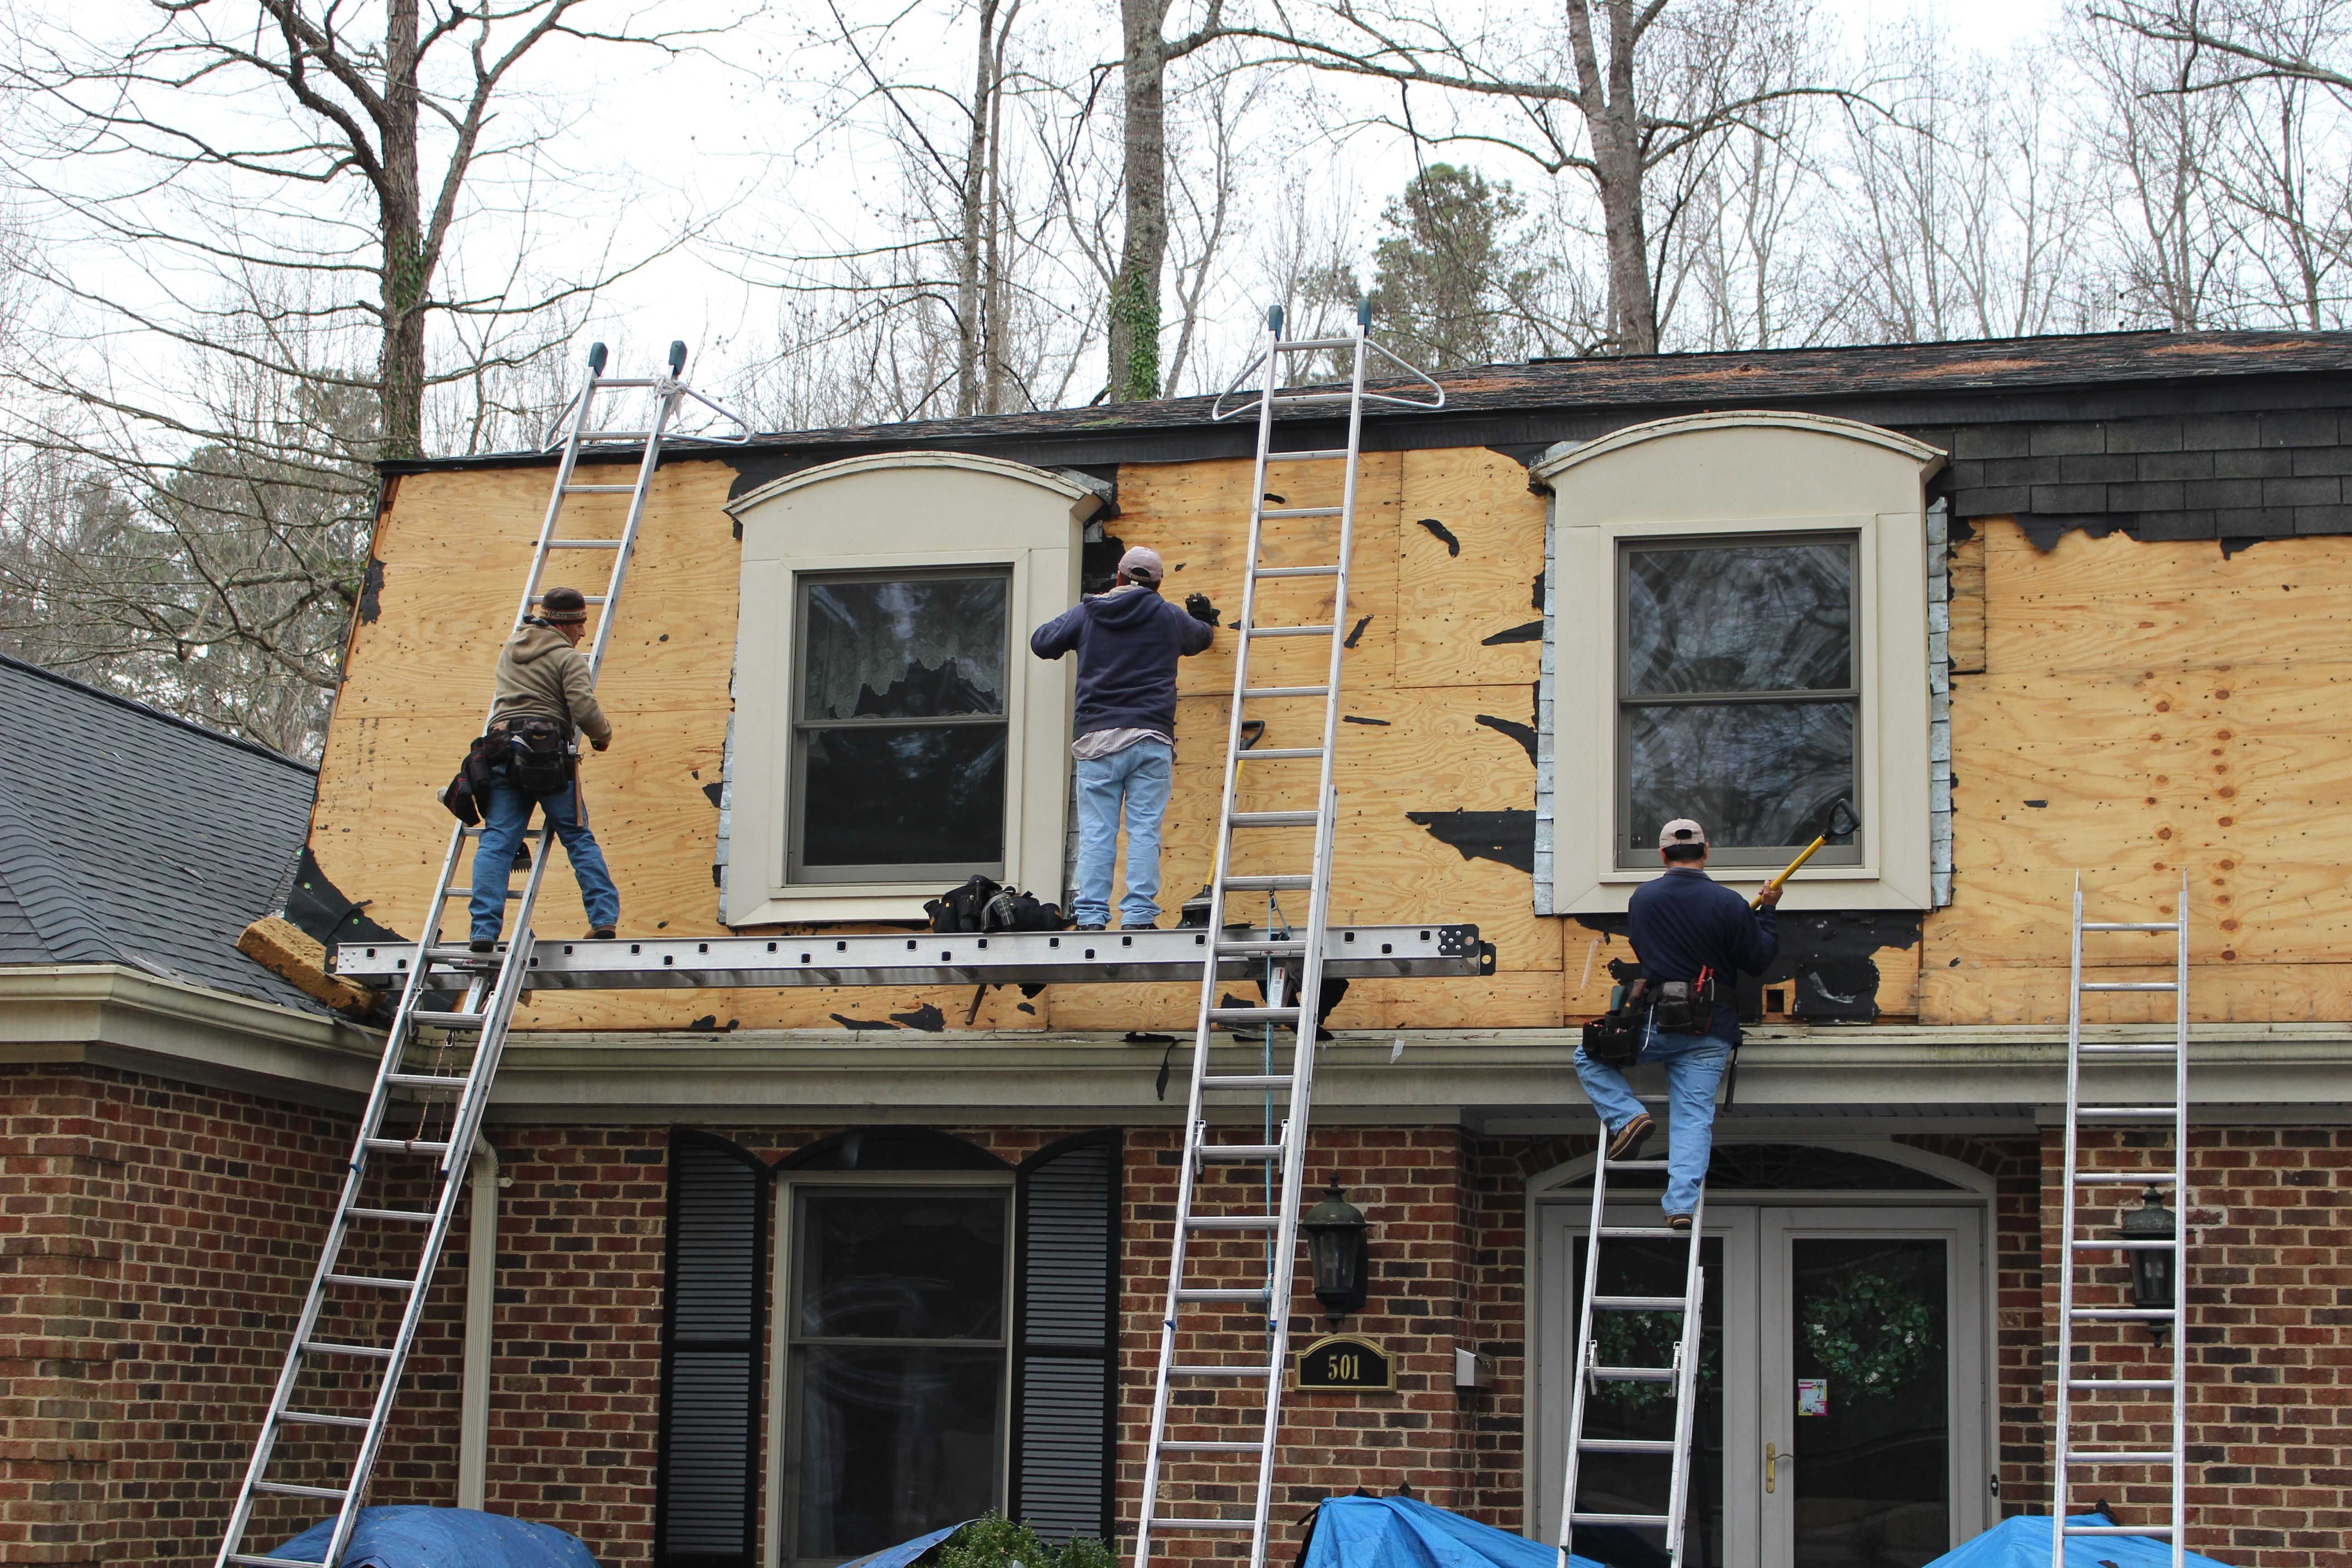 A Crs Crew Makes Sure The Deck Is Clean Of Roofing Nails To Begin Covering With An Underlayment Roofing Roofing Nails Architectural Shingles